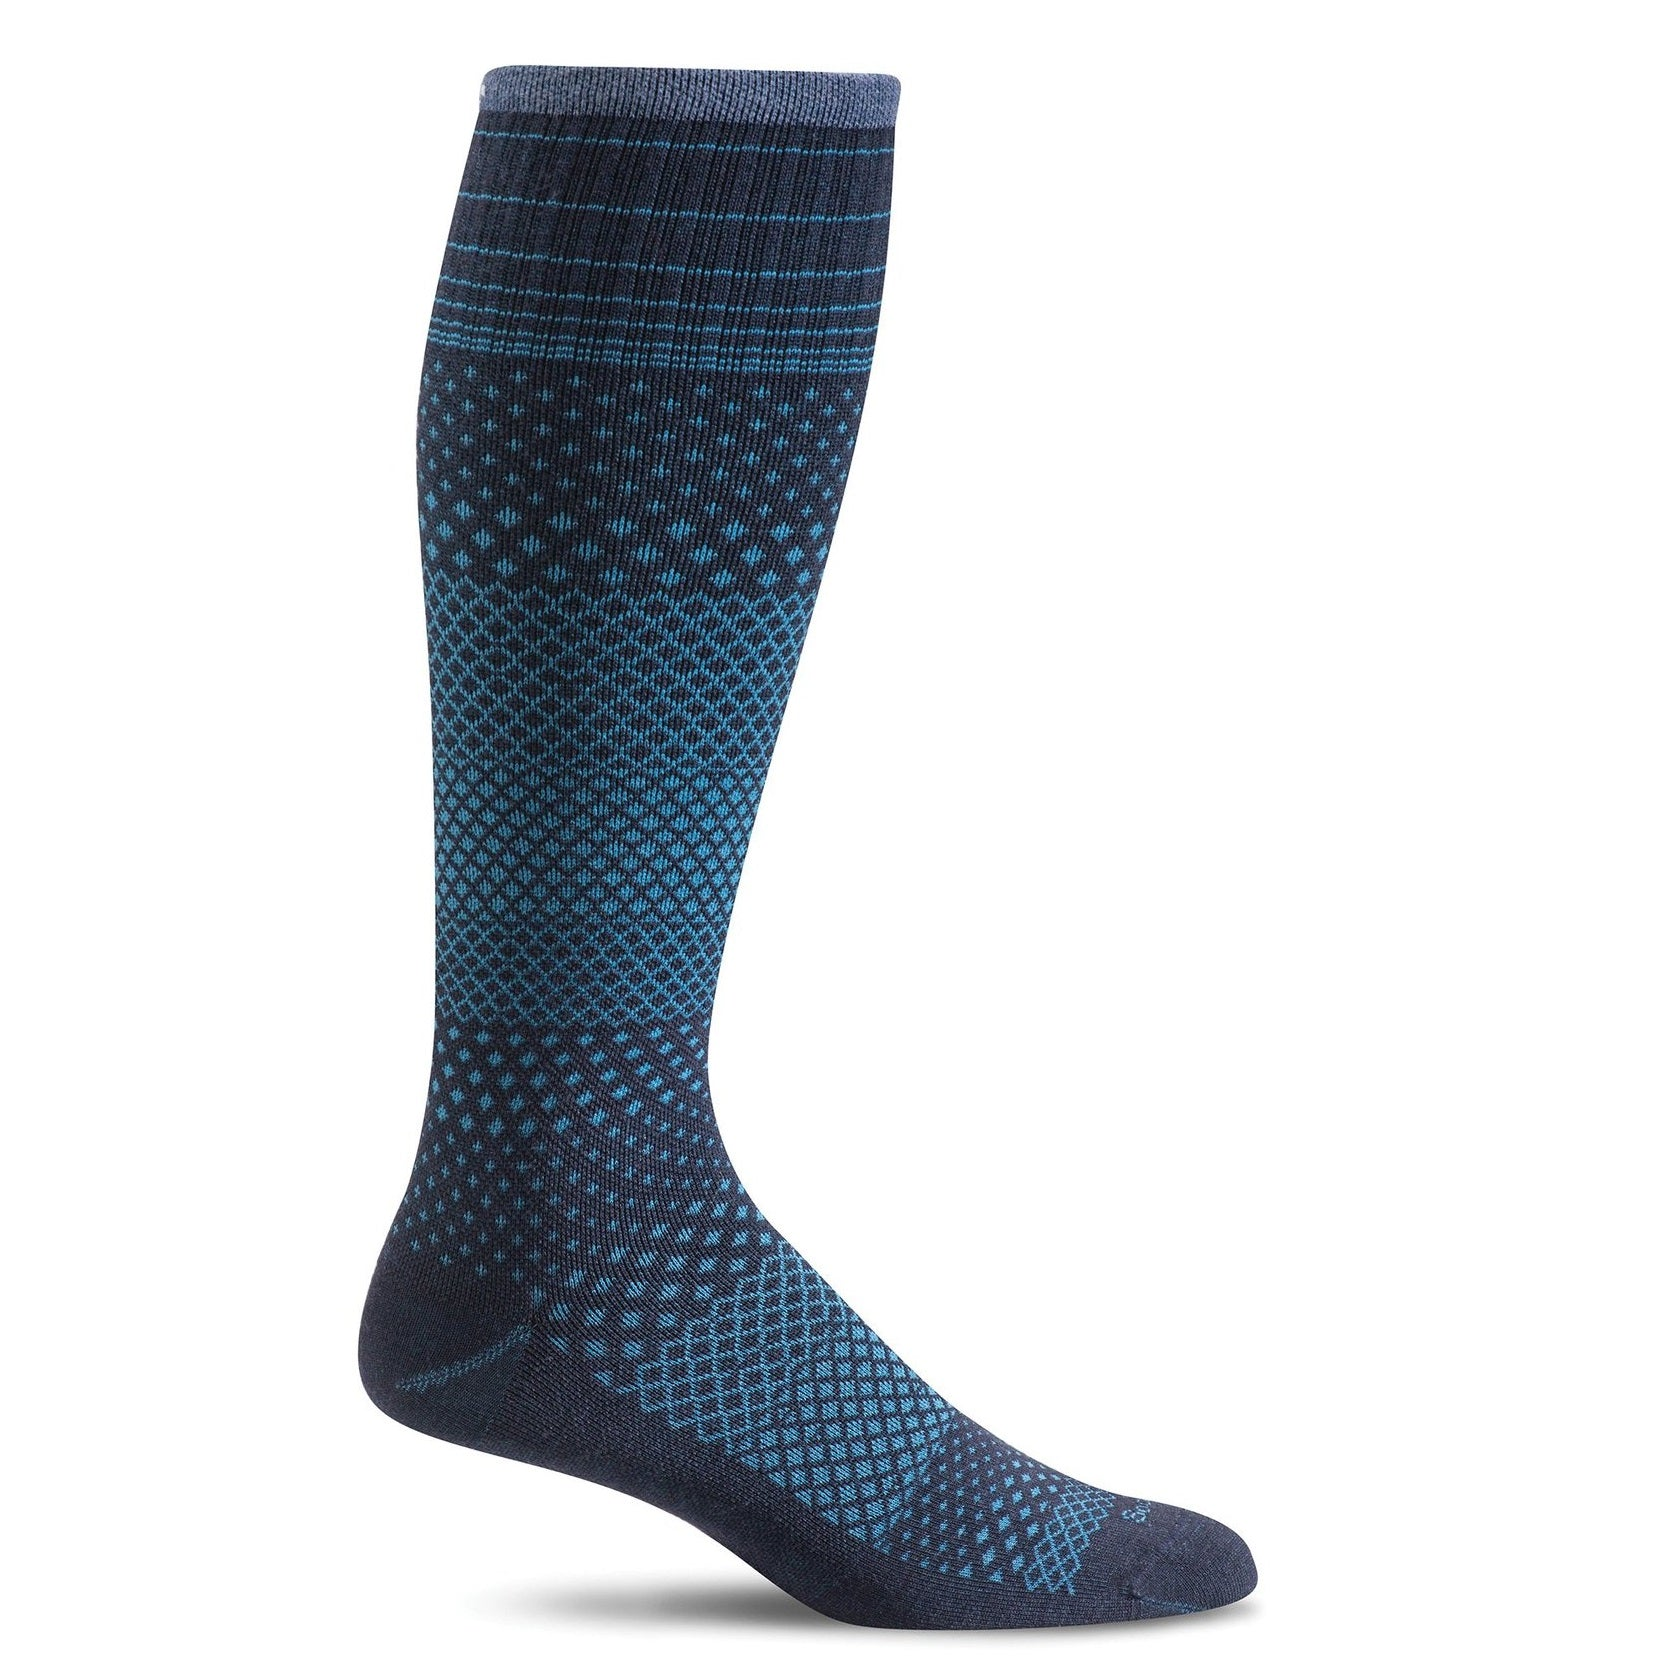 Sockwell Women's Micro Grade Graduted Compression Socks - Navy